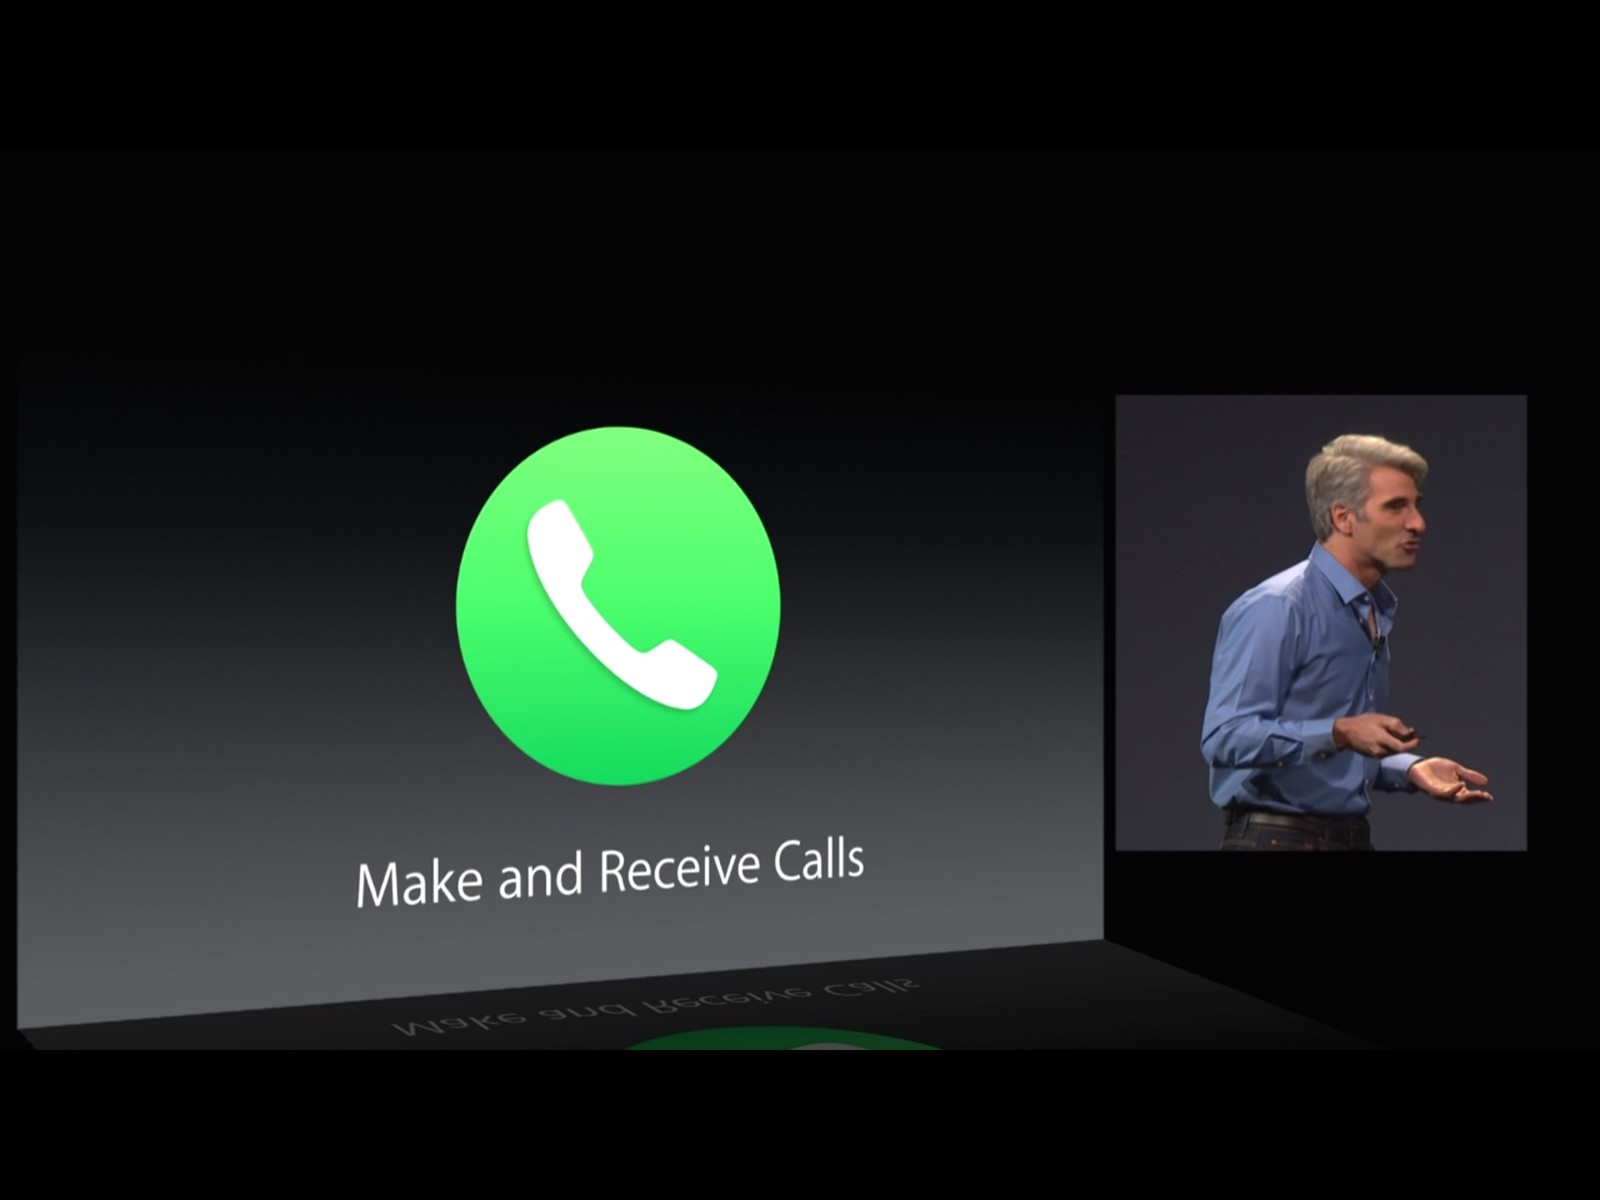 Making and receiving phone calls on iOS 8 for iPad and OS X Yosemite: Explained